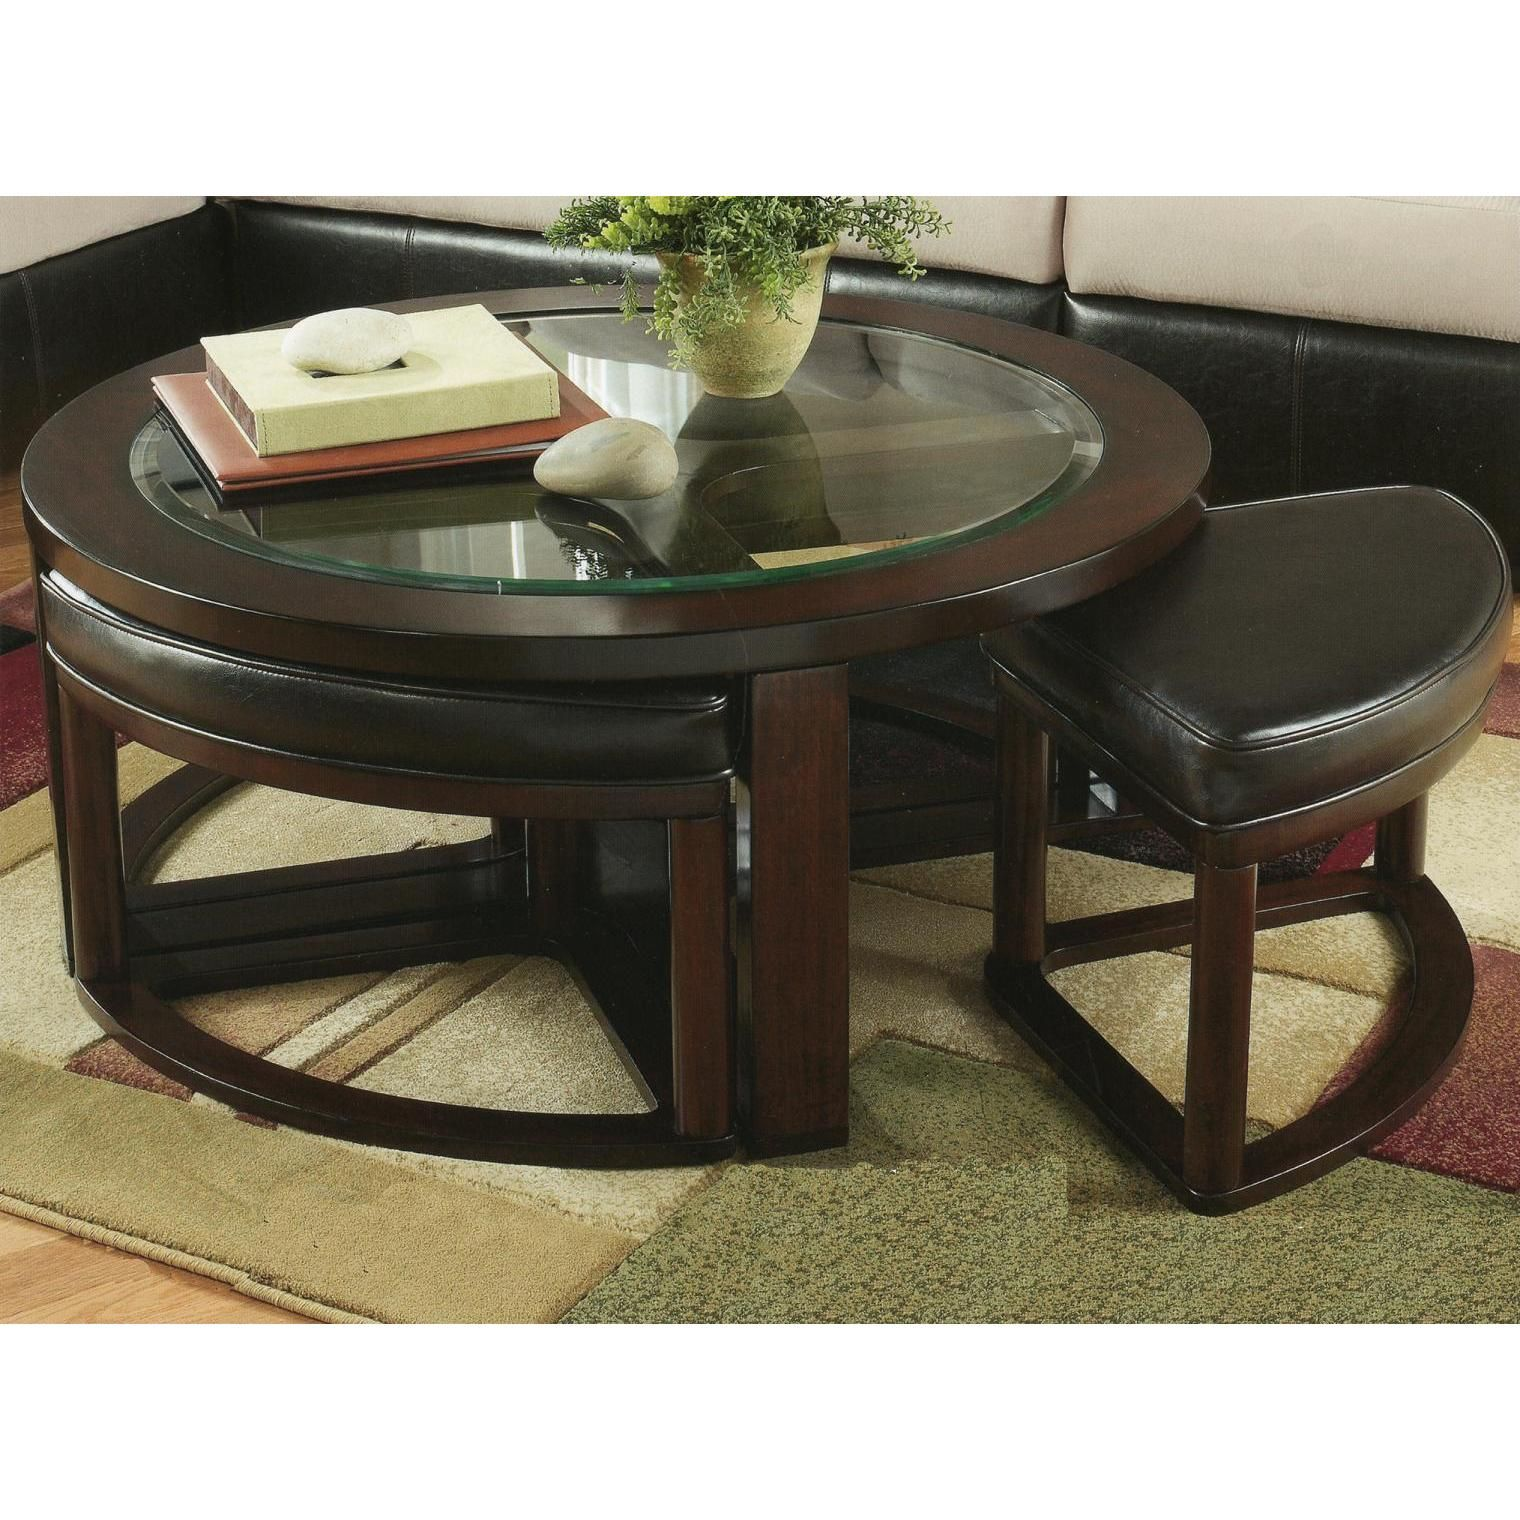 Overstock Com Online Shopping Bedding Furniture Electronics Jewelry Clothing More Coffee Table With Seating Coffee Table With Stools Underneath Coffee Table With Chairs [ 1520 x 1520 Pixel ]